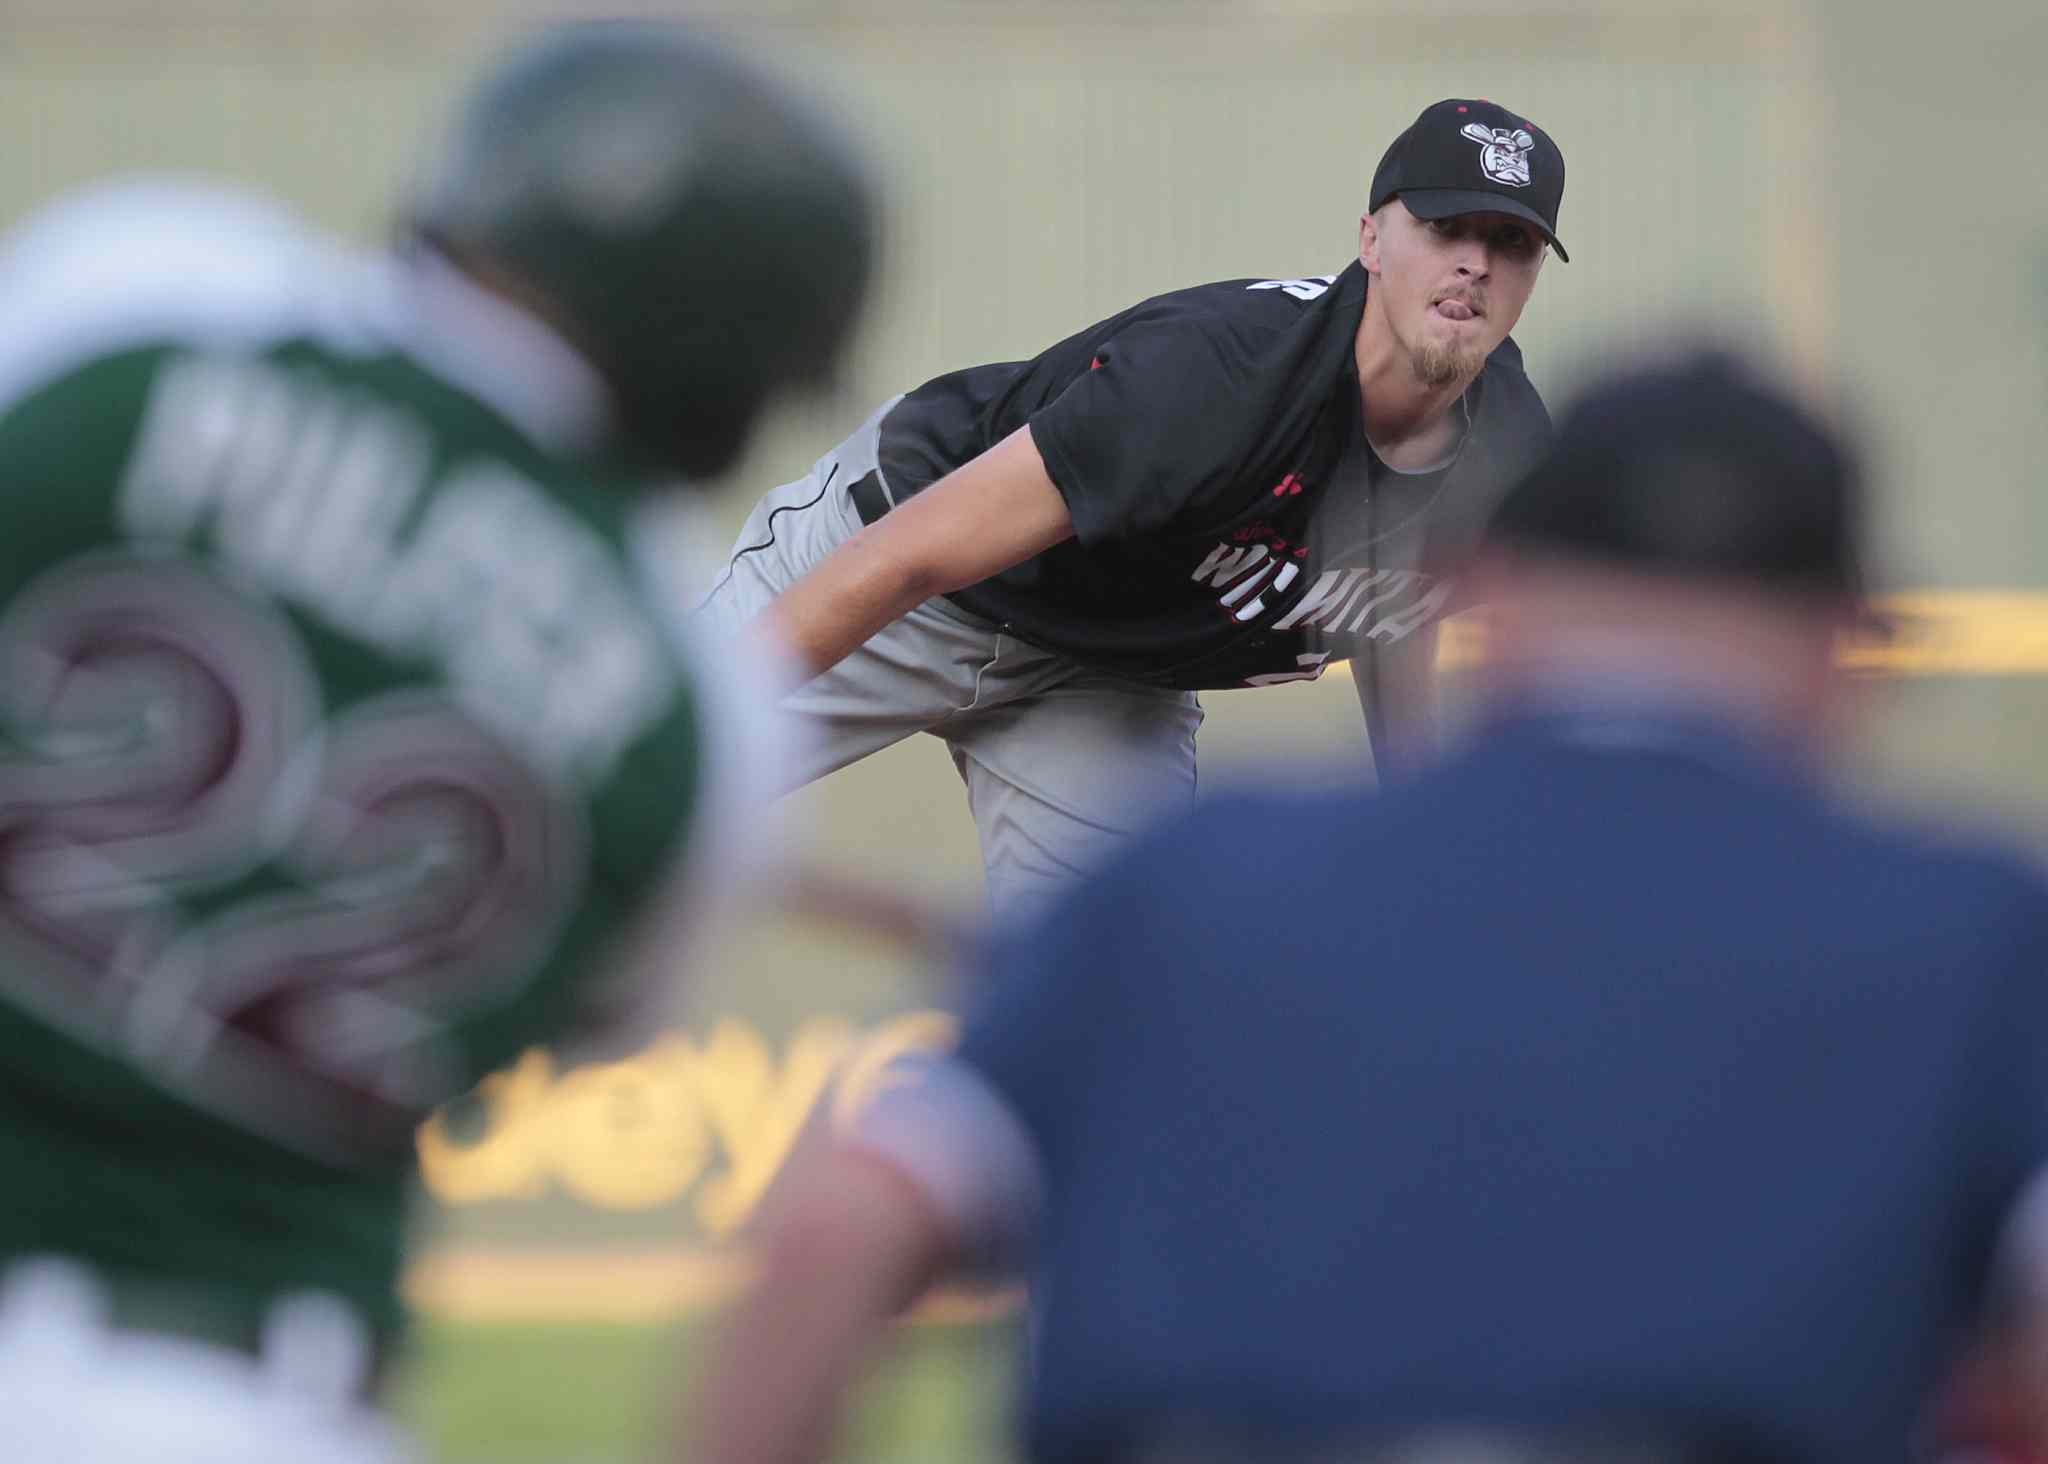 Team South opening pitcher Jason Van Skike throws in the 2014 American Association All-Star game in Winnipeg Tuesday.